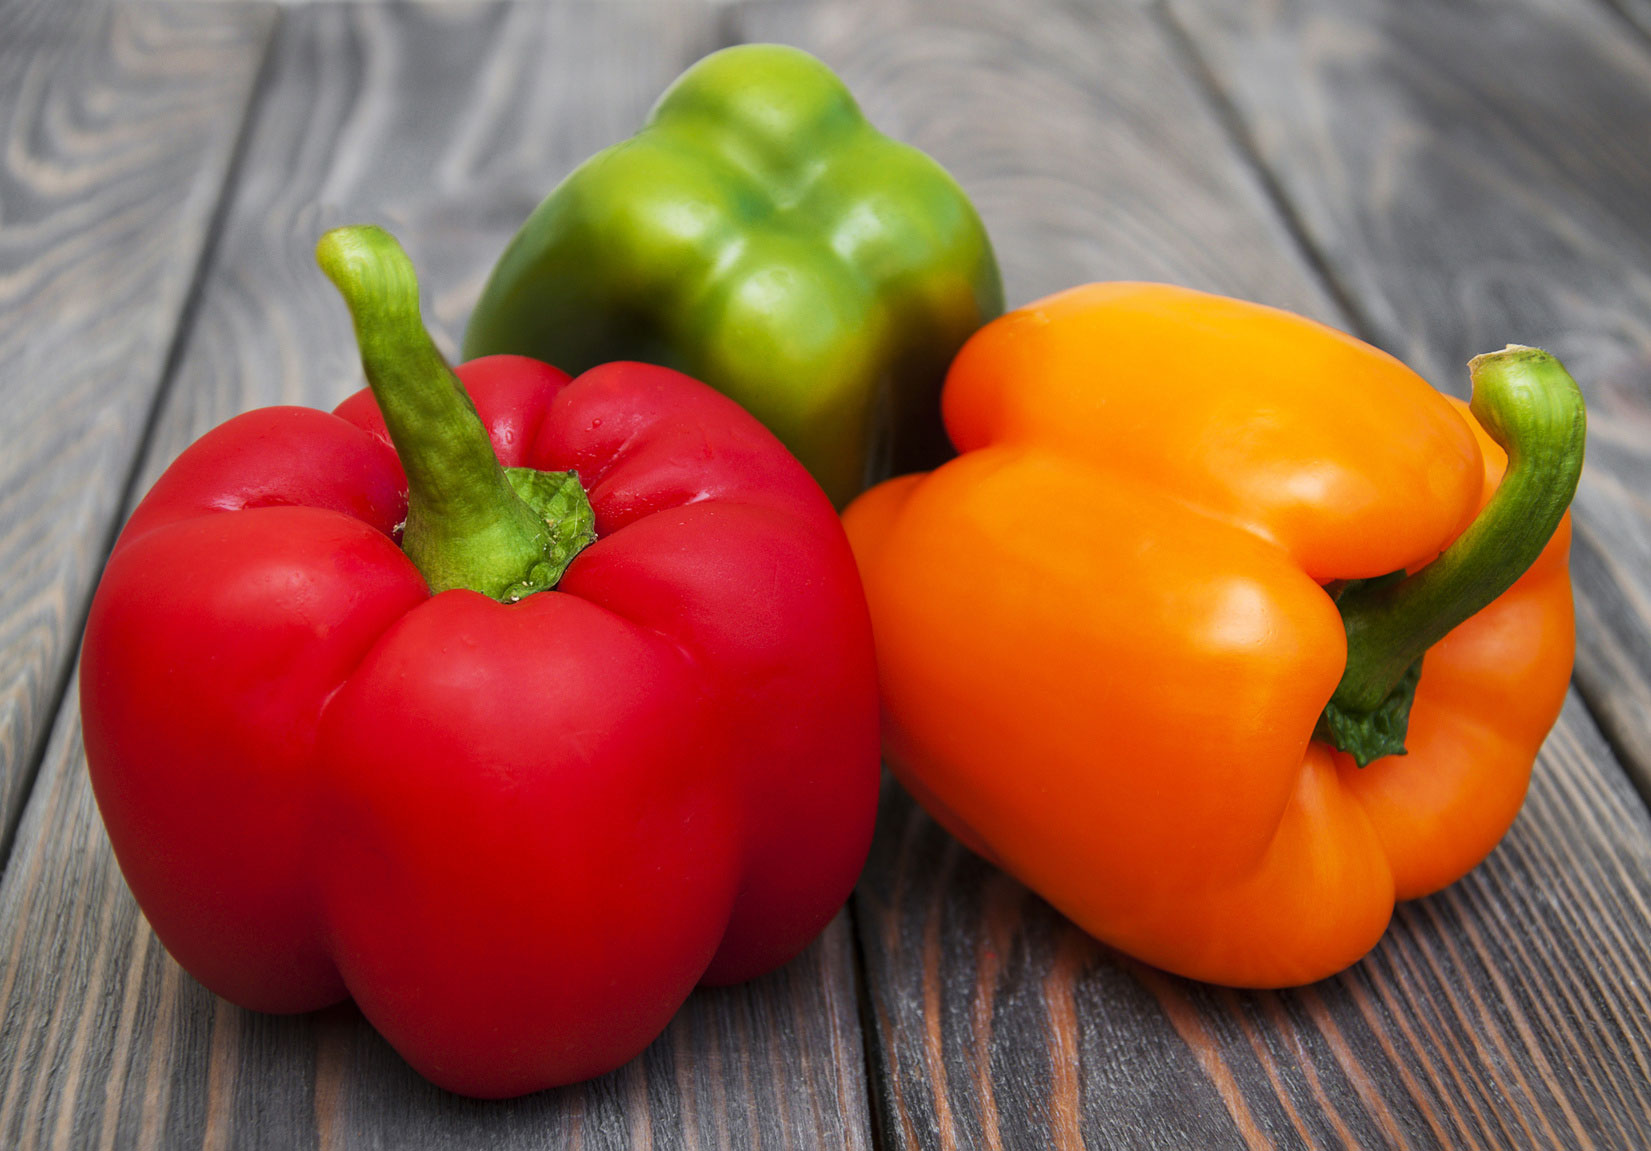 green, red, and yellow bell peppers.